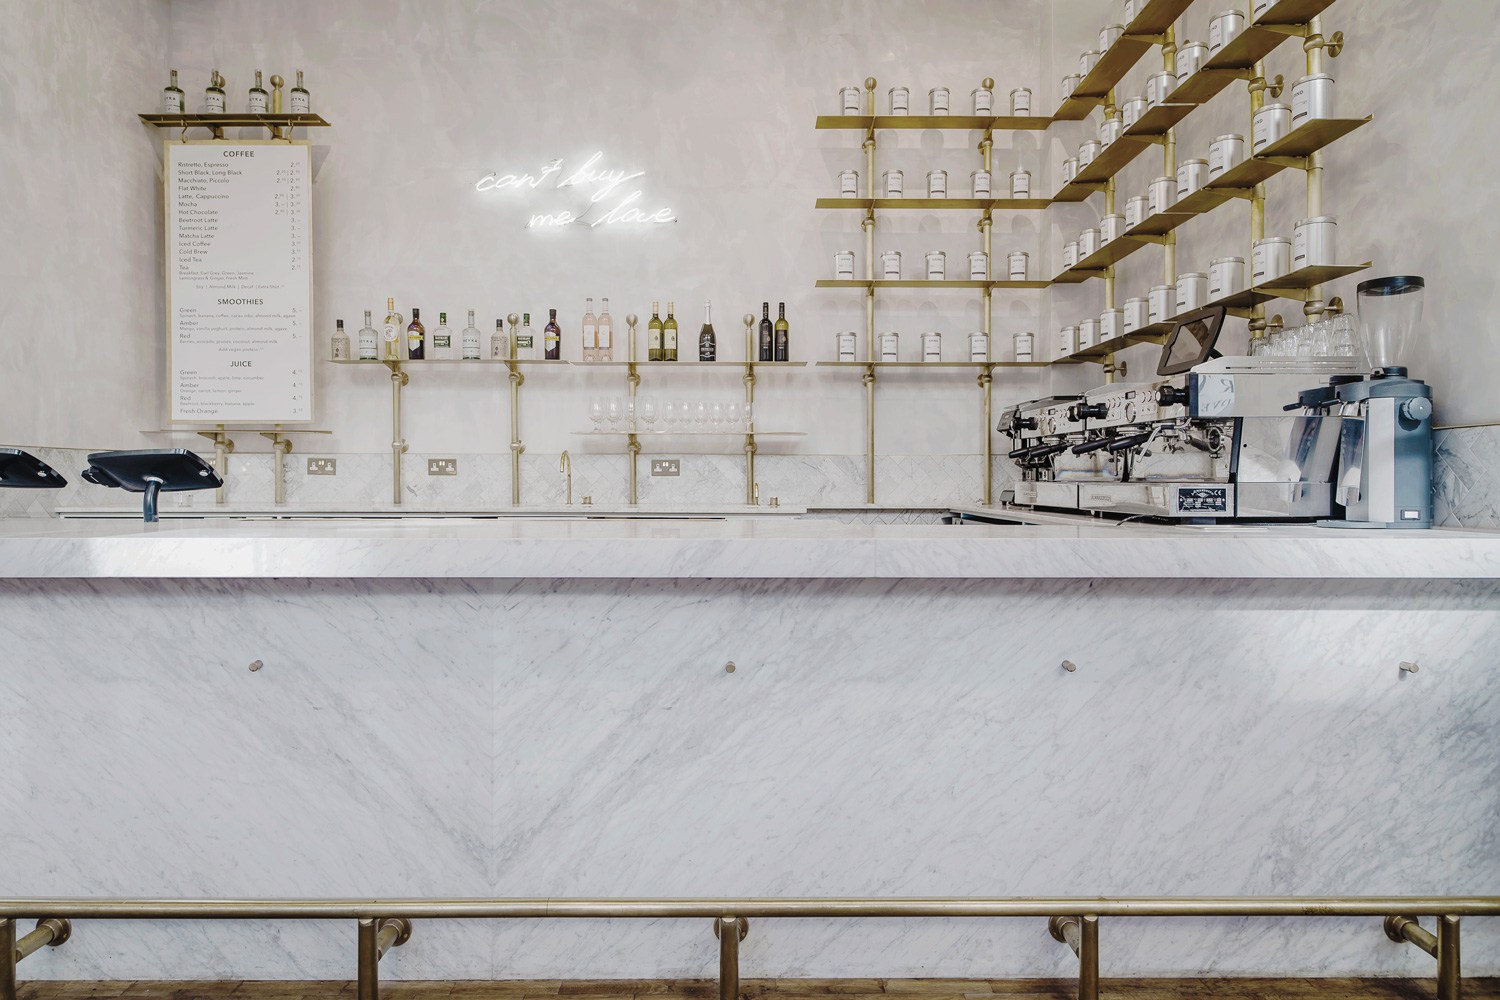 Royal Exchange Grind | Sophisticated Espresso Bar in London